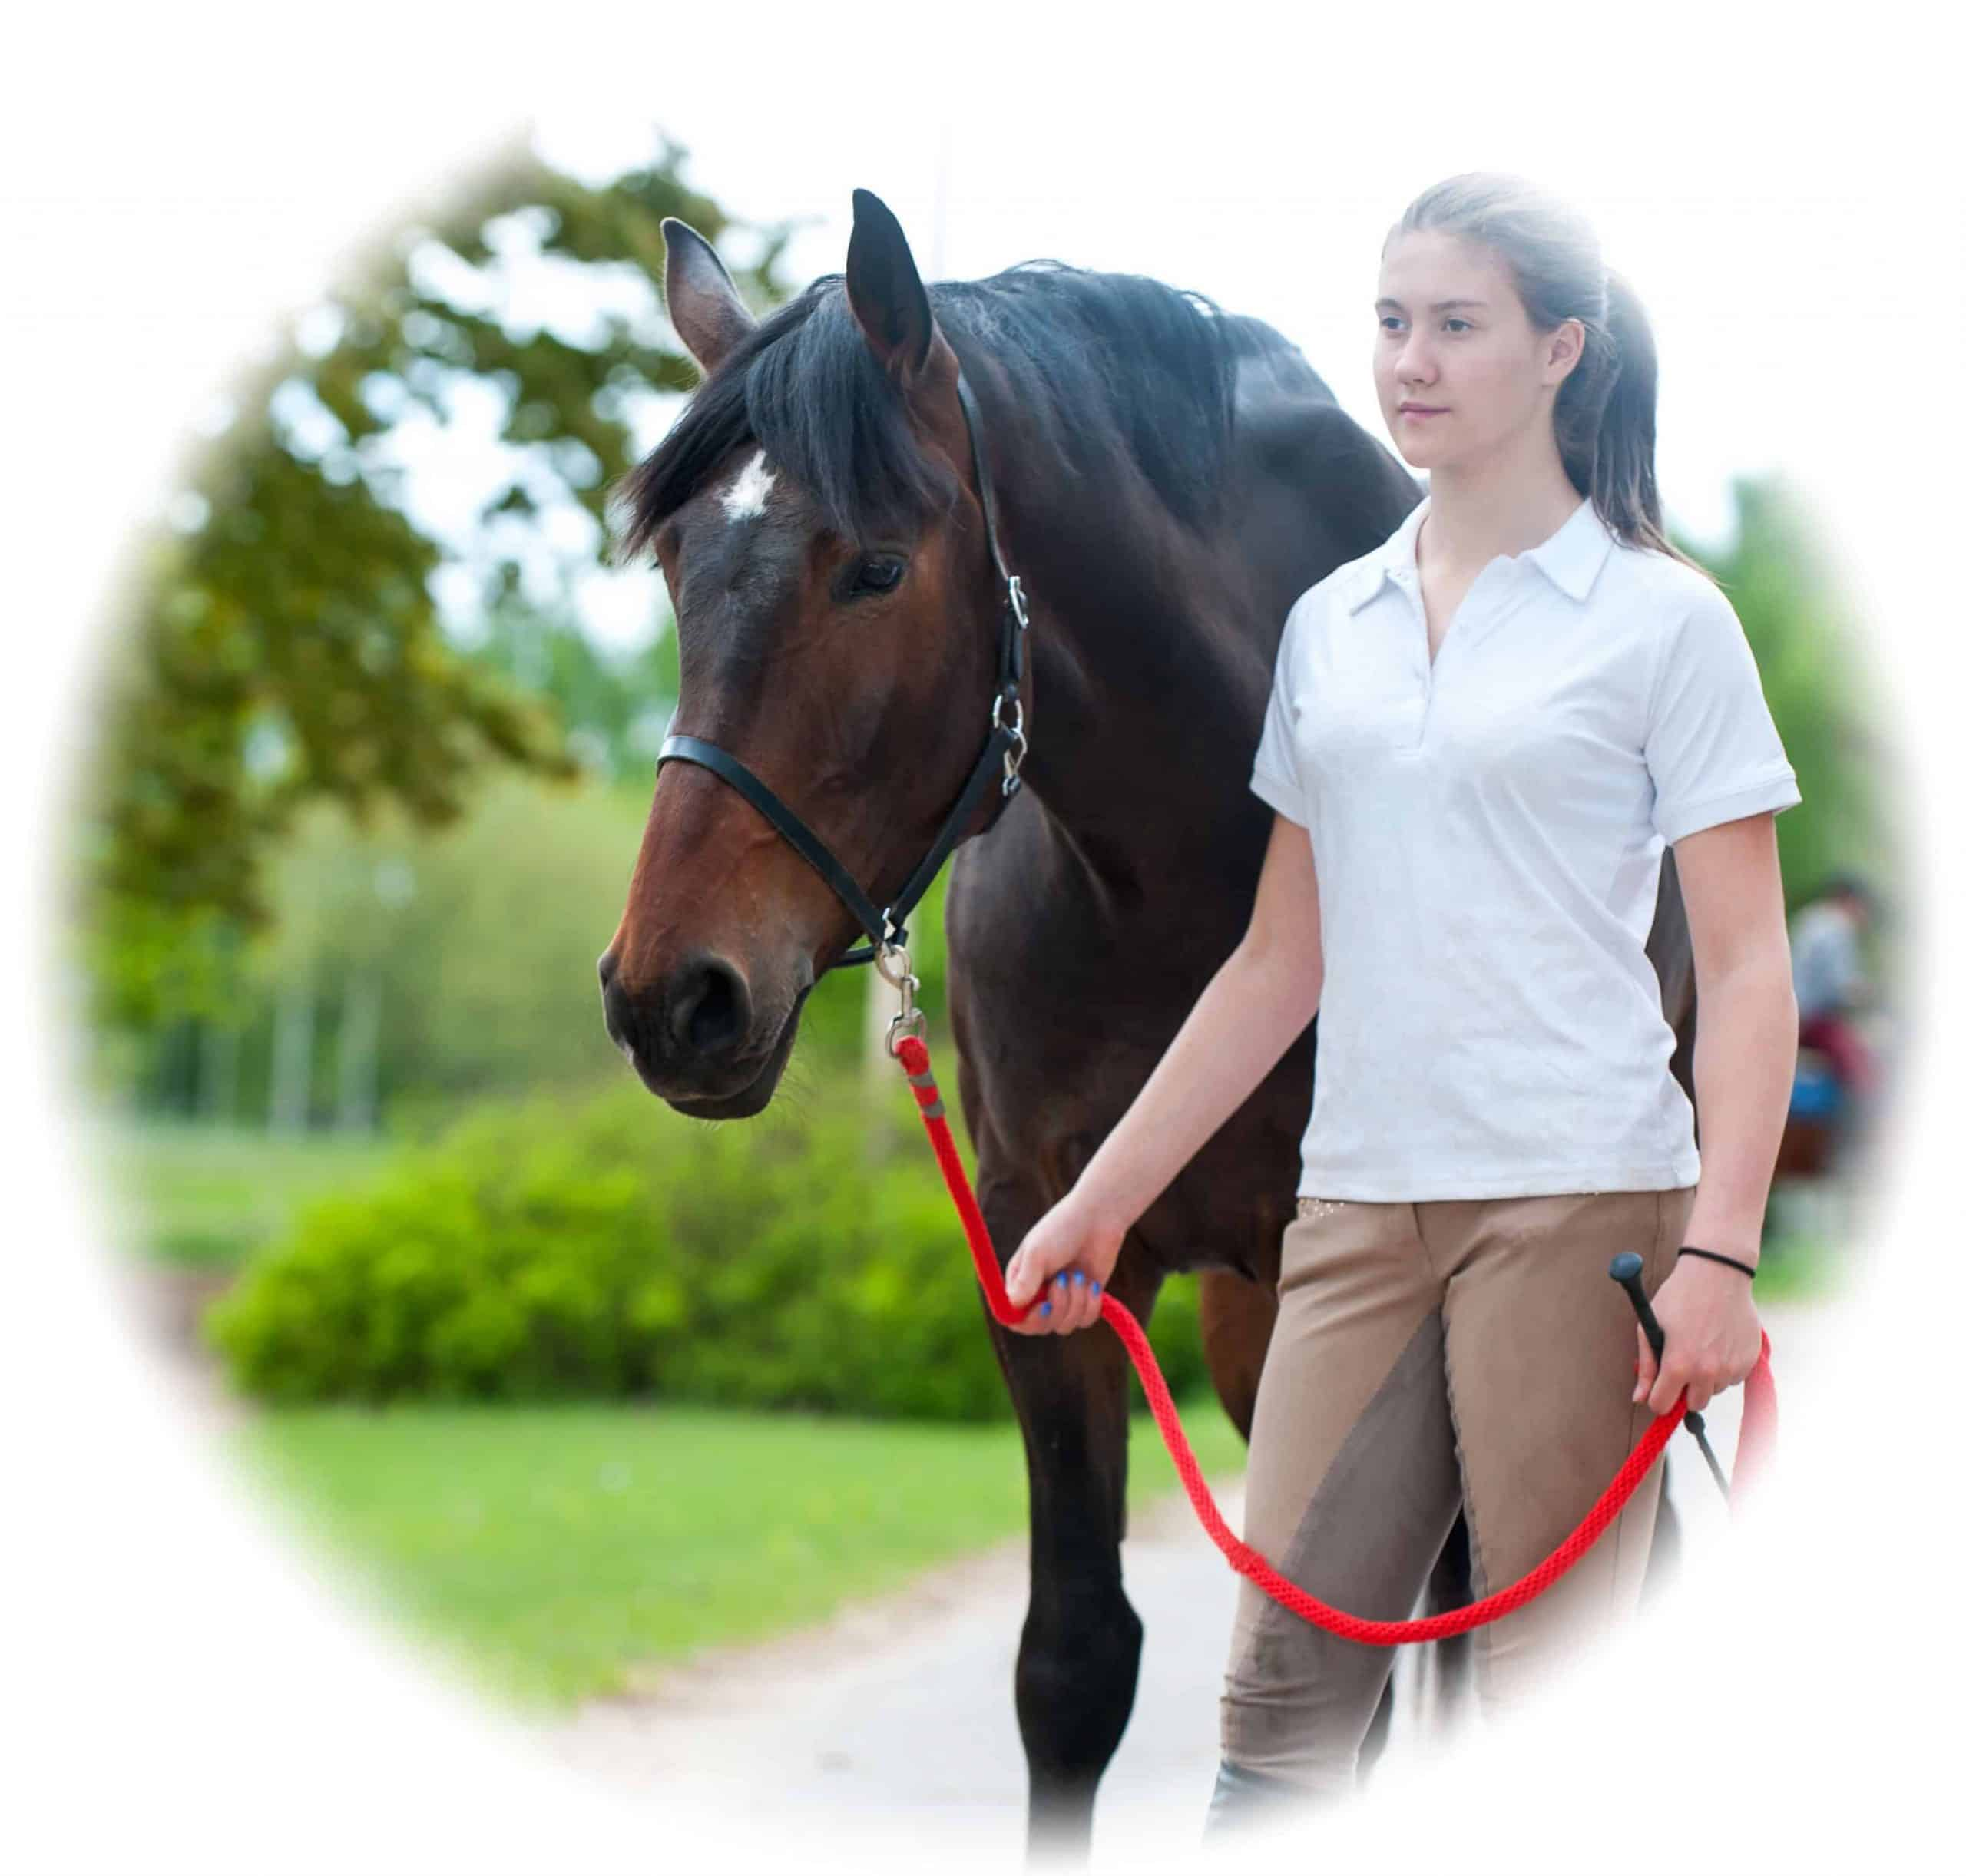 Horse care qualification - training and skills